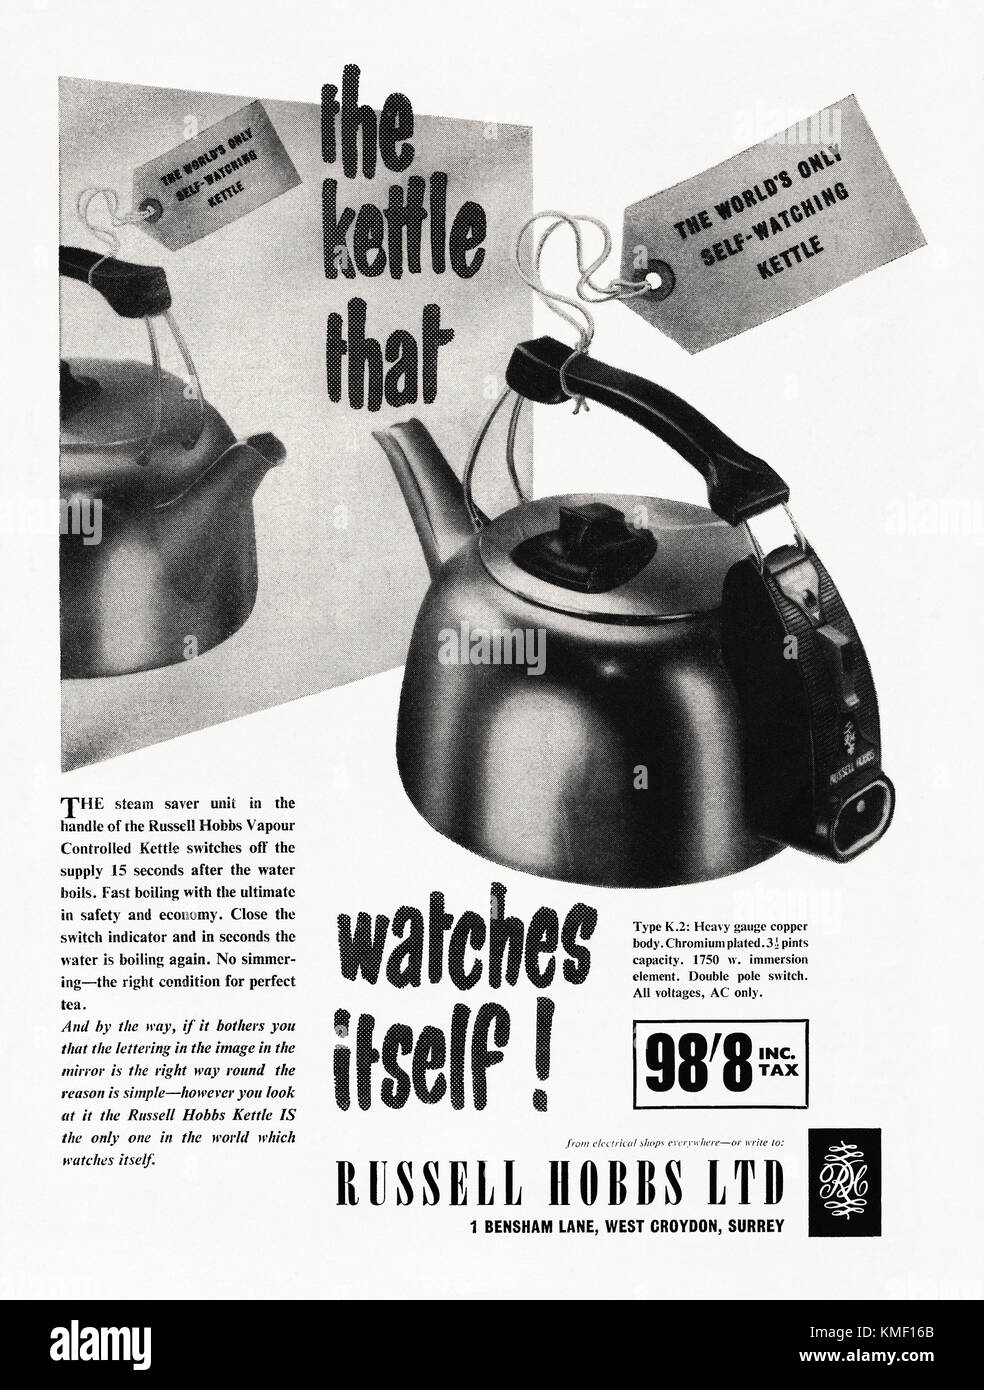 Russell Hobbs K2 kettle - it that the electric kettle the only self-watching one (meaning that it switches off automatically - Stock Image